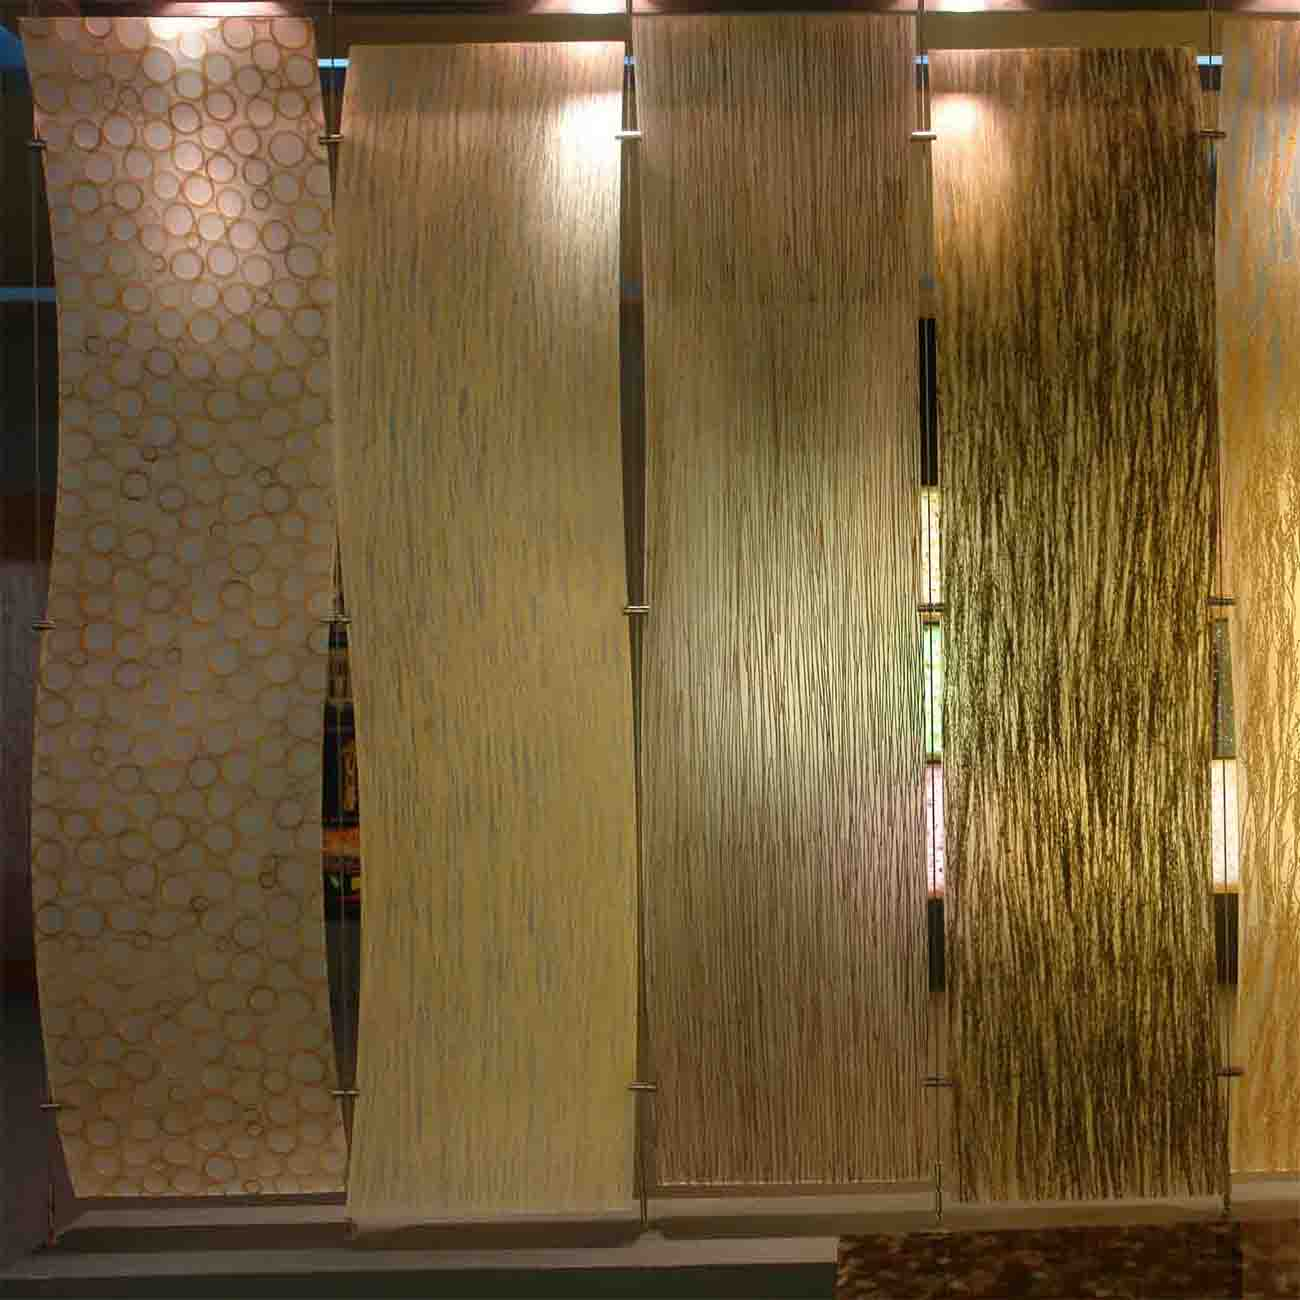 Furniture interior wall decoration - Interior wall sheeting materials ...